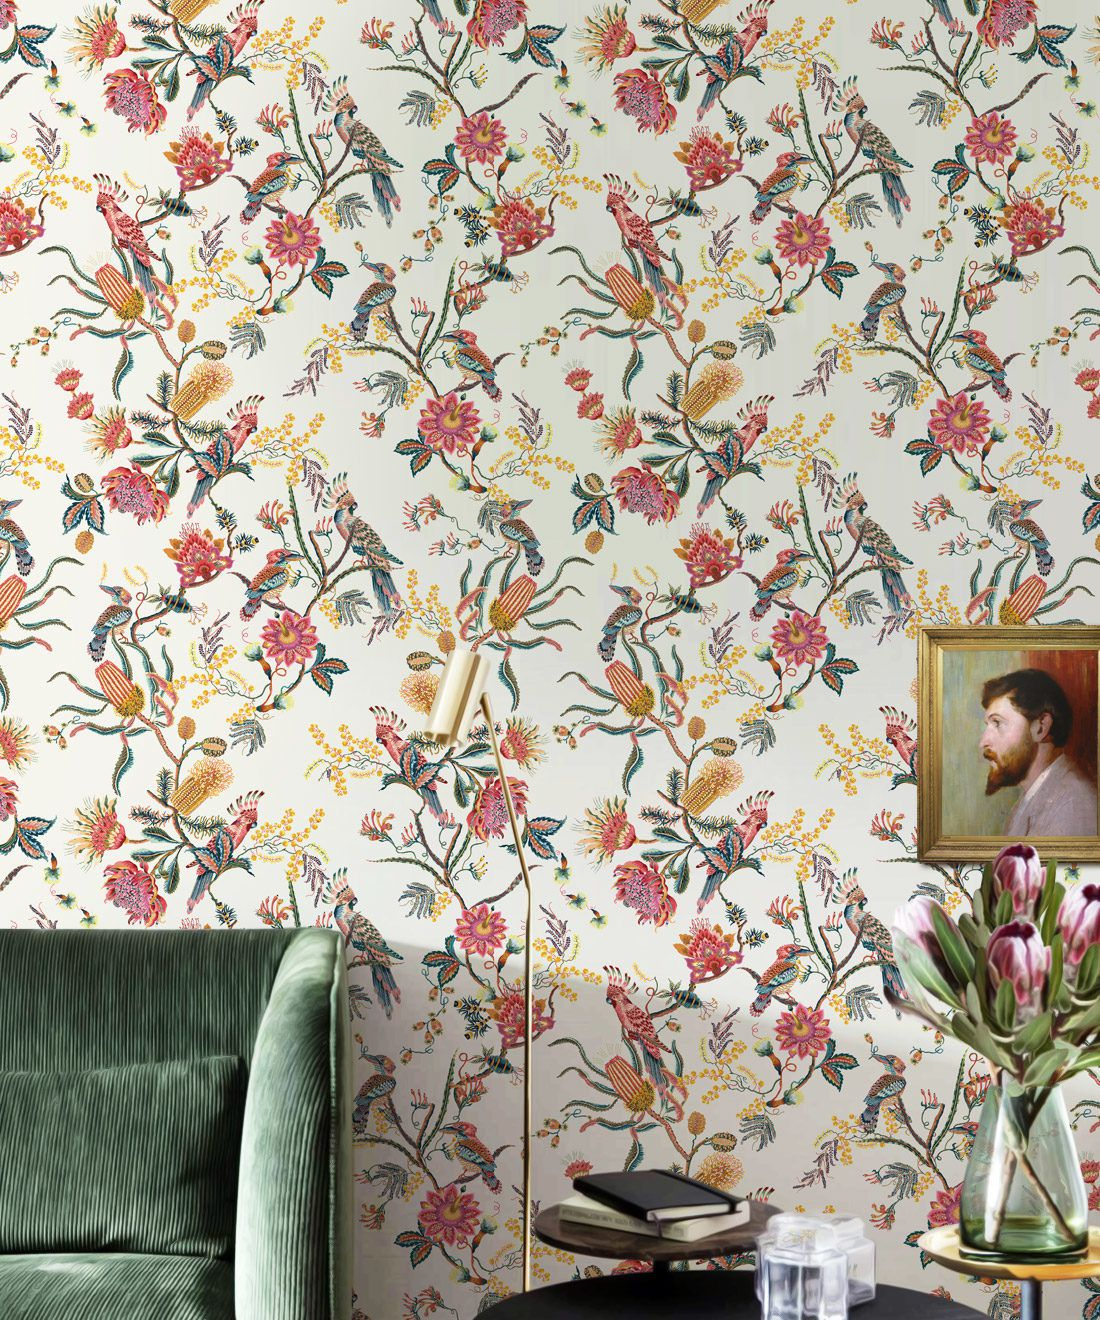 Matilda Wallpaper • Cockatoo, kookaburra • Australian Wallpaper • Milton & King USA • Oceania Roll